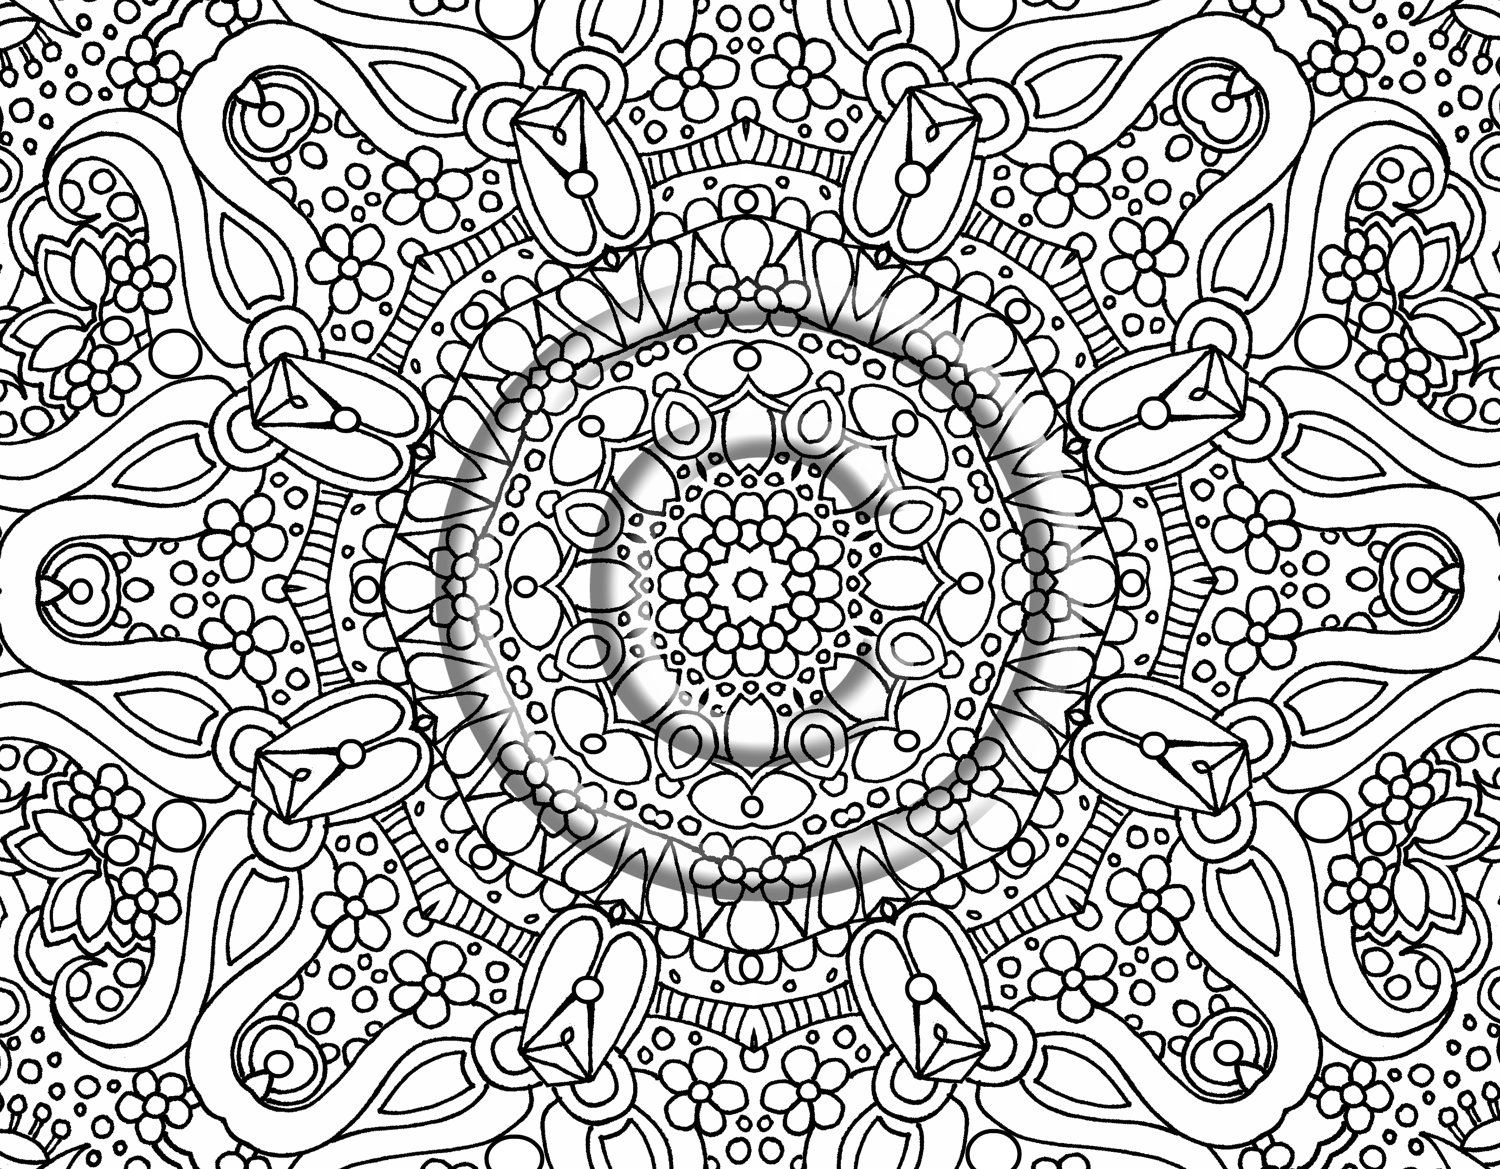 Coloring pages abstract - Hard Coloring Pages